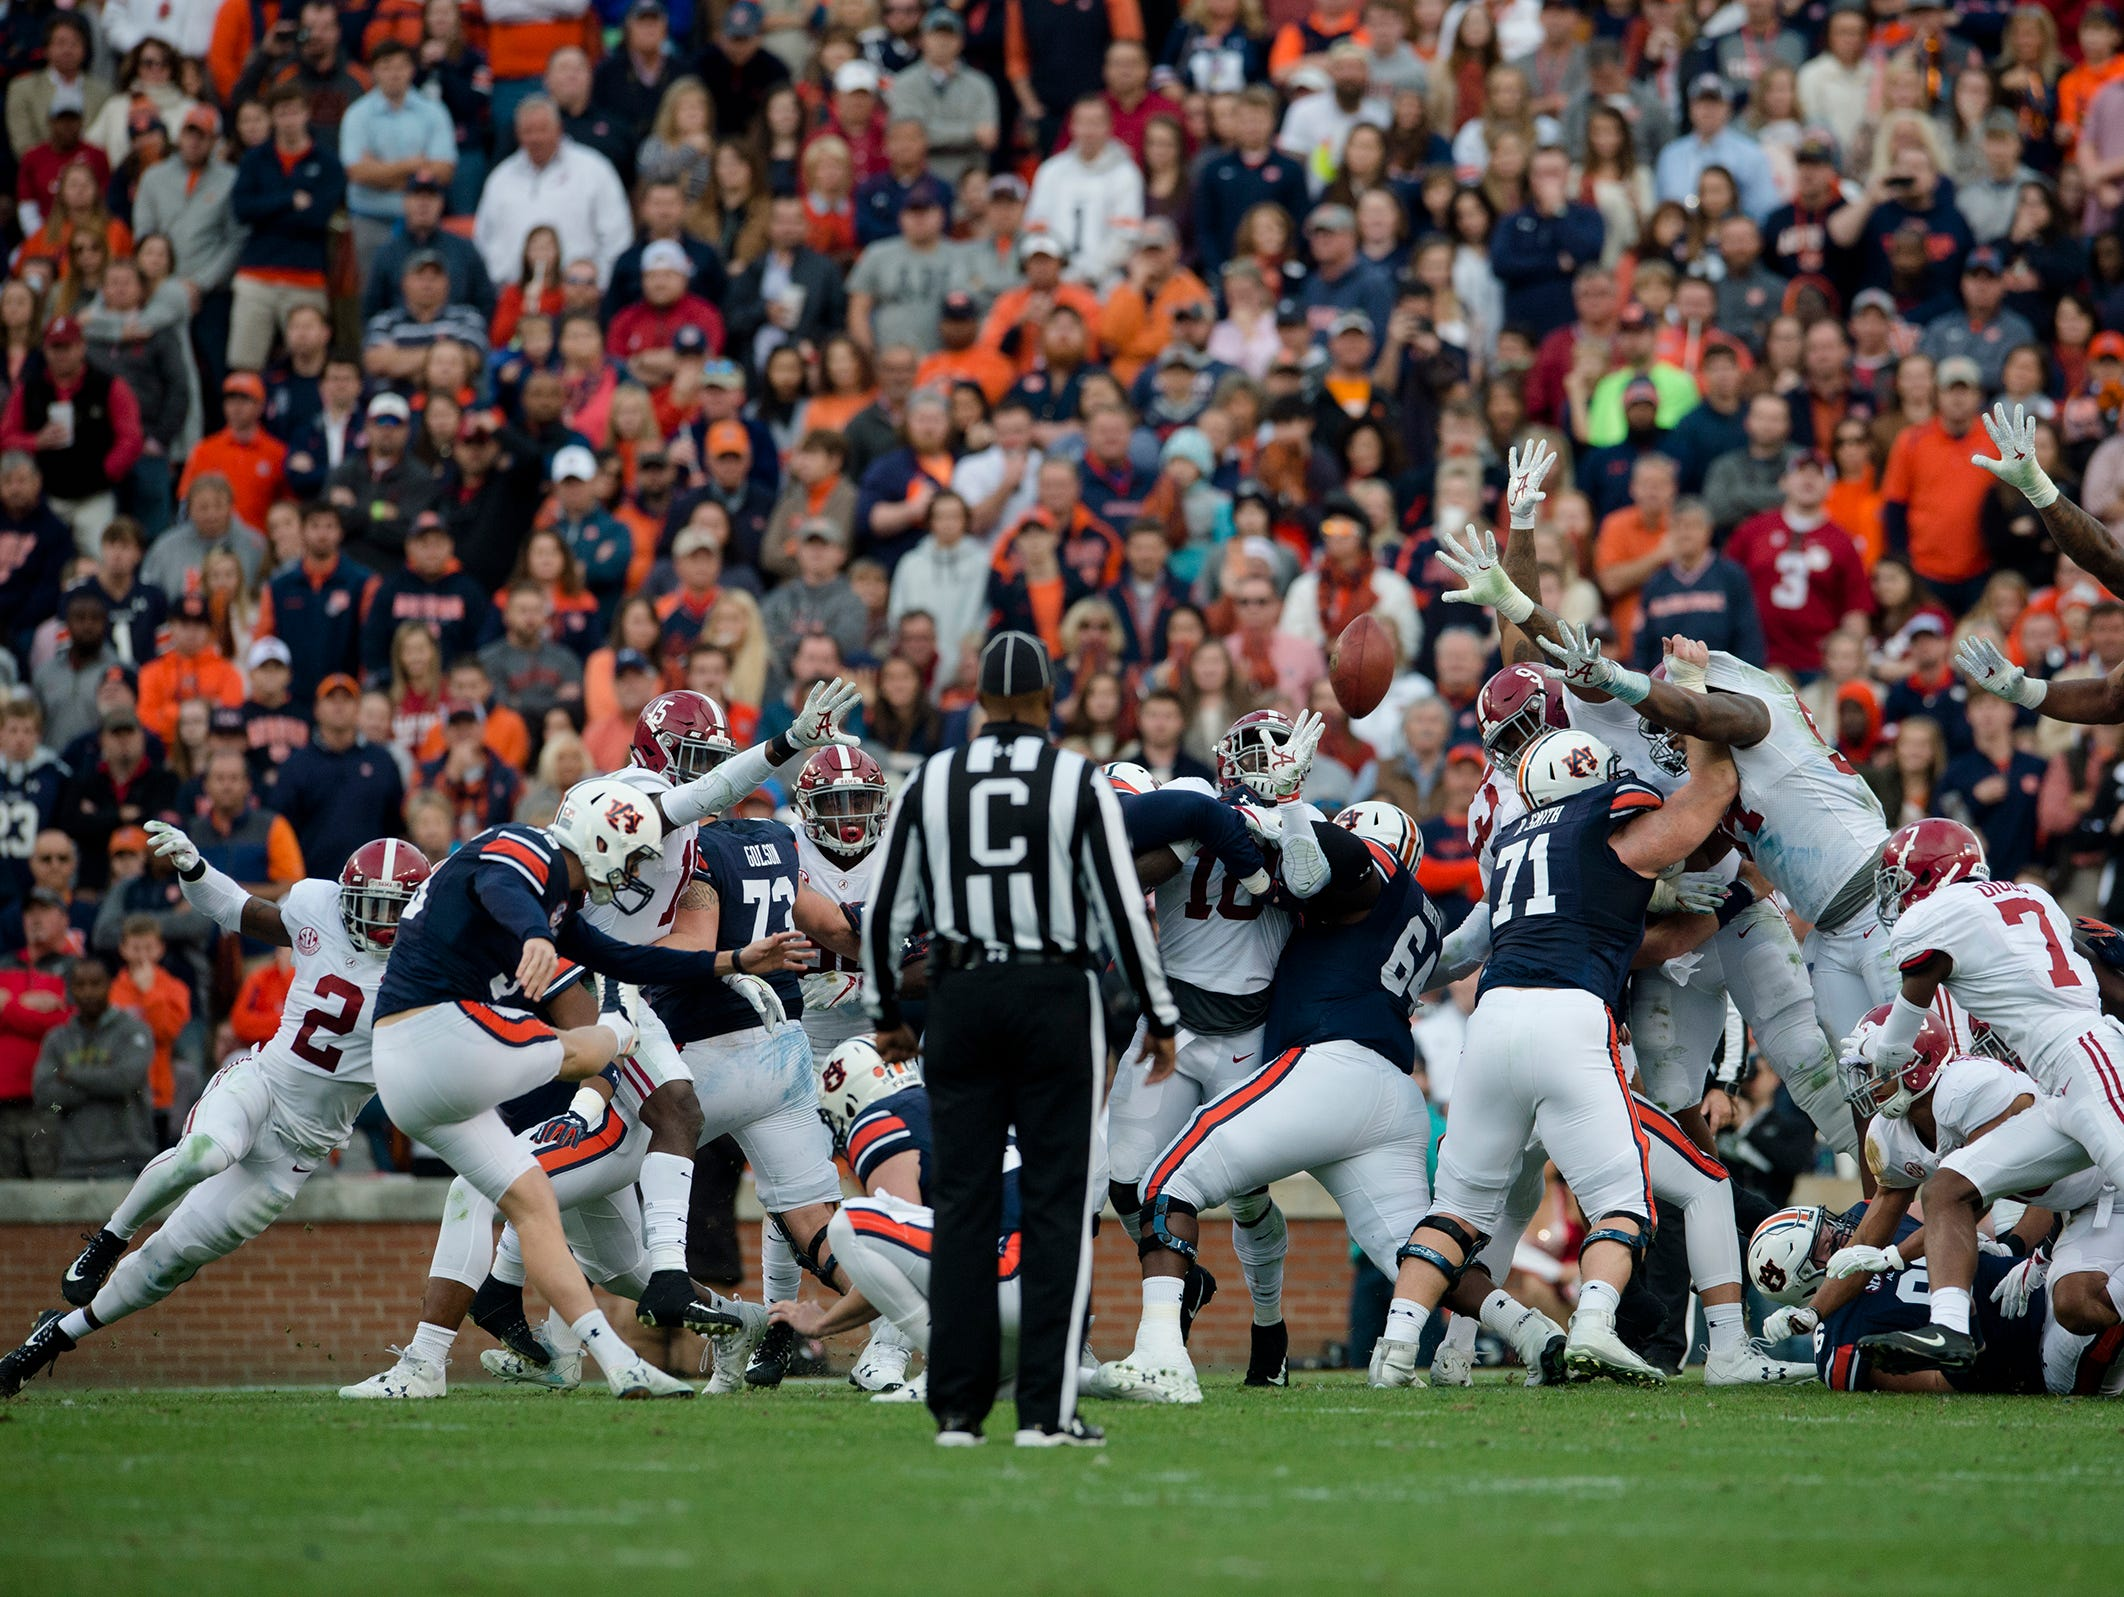 Auburn place kicker Daniel Carlson (38) hits a field goal at halftime to put Auburn up on Alabama 10-7 during the Iron Bowl NCAA football game between Auburn and Alabama on Saturday, Nov. 25, 2017, in Auburn, Ala.